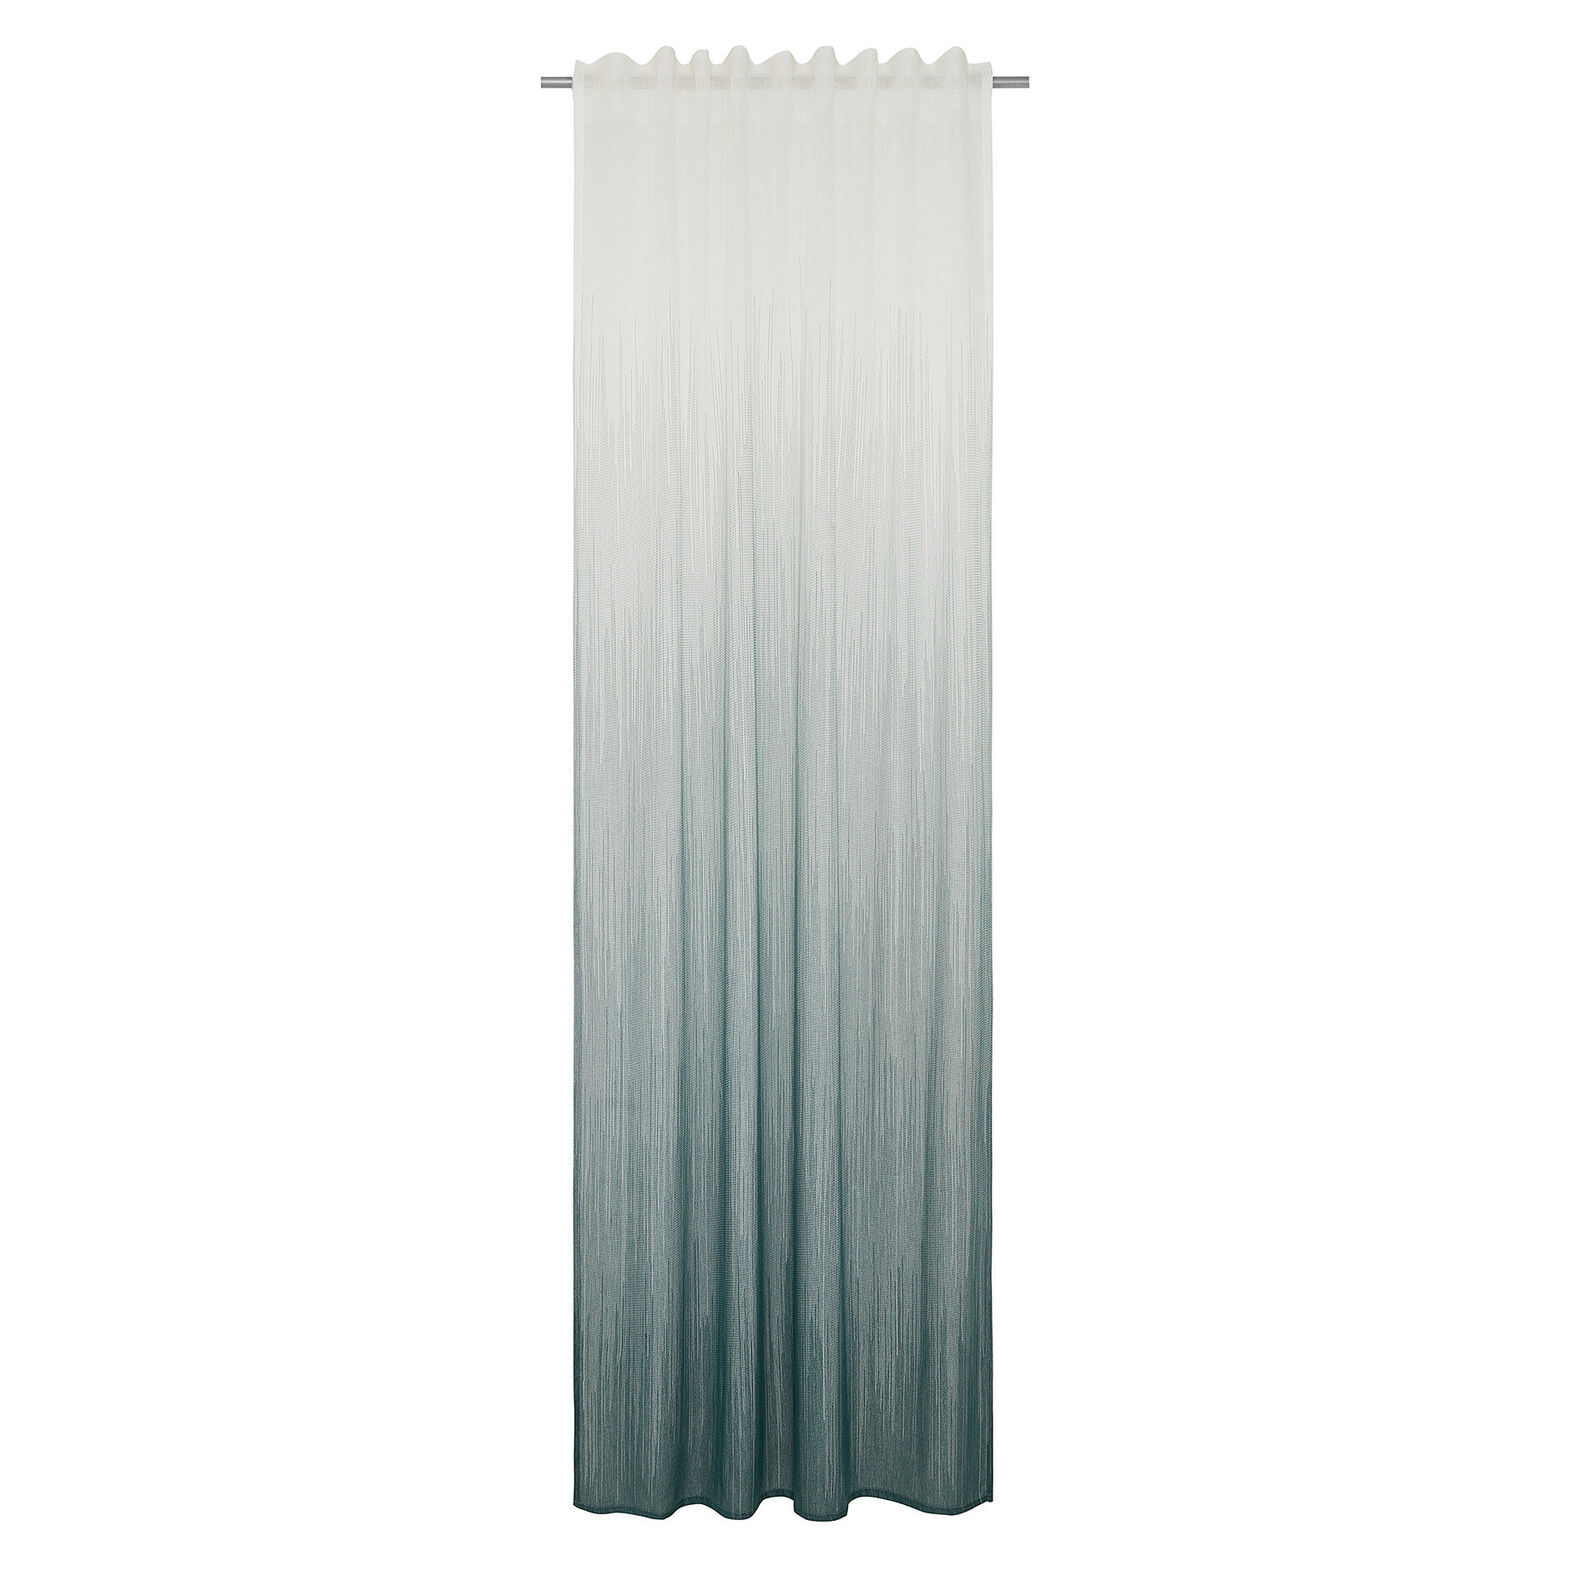 Faded curtain with concealed loops